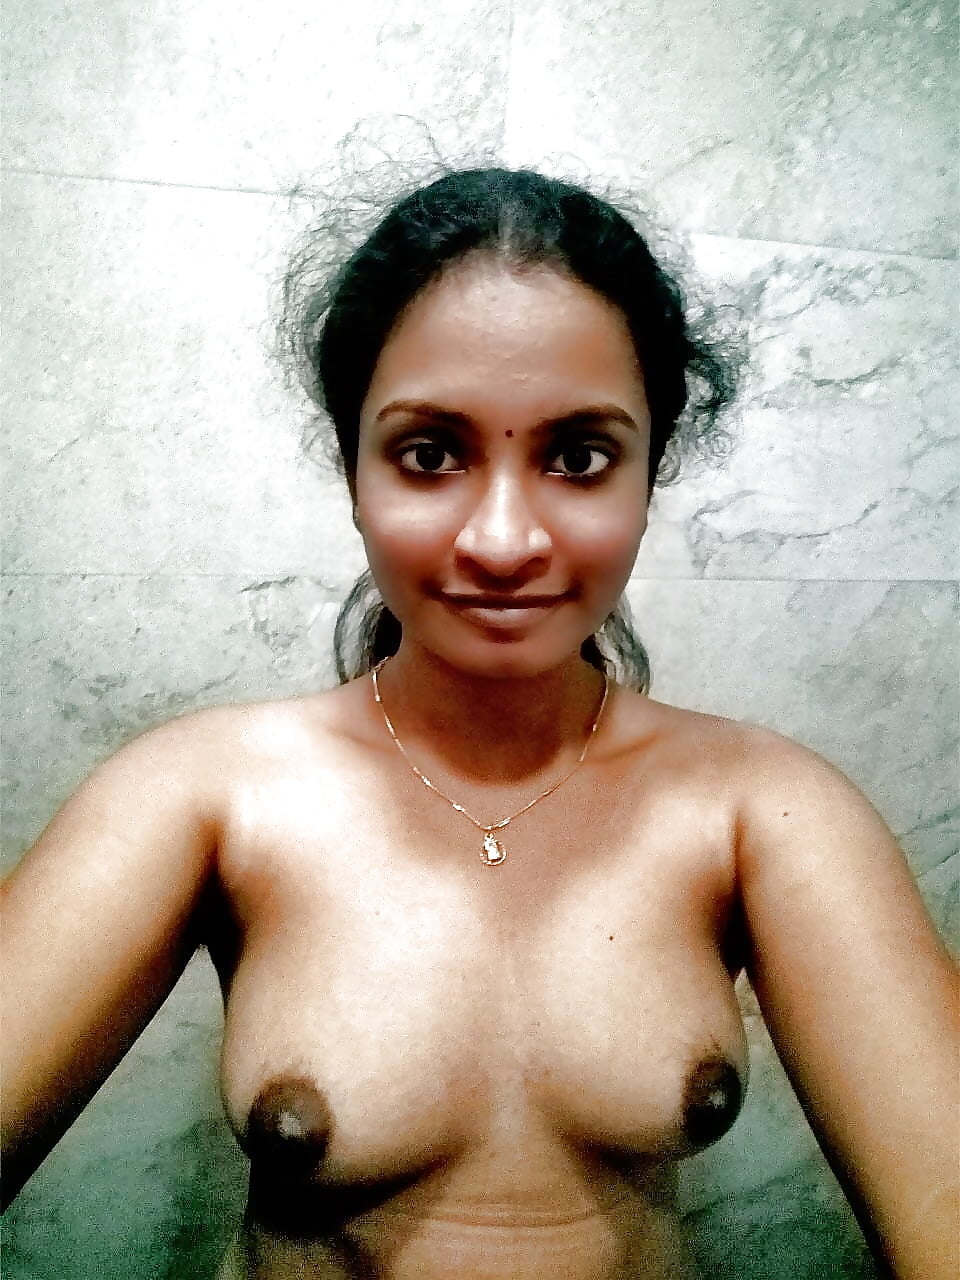 Images of nude girls in tamil cinemas, jo ann thrax adult entertainer